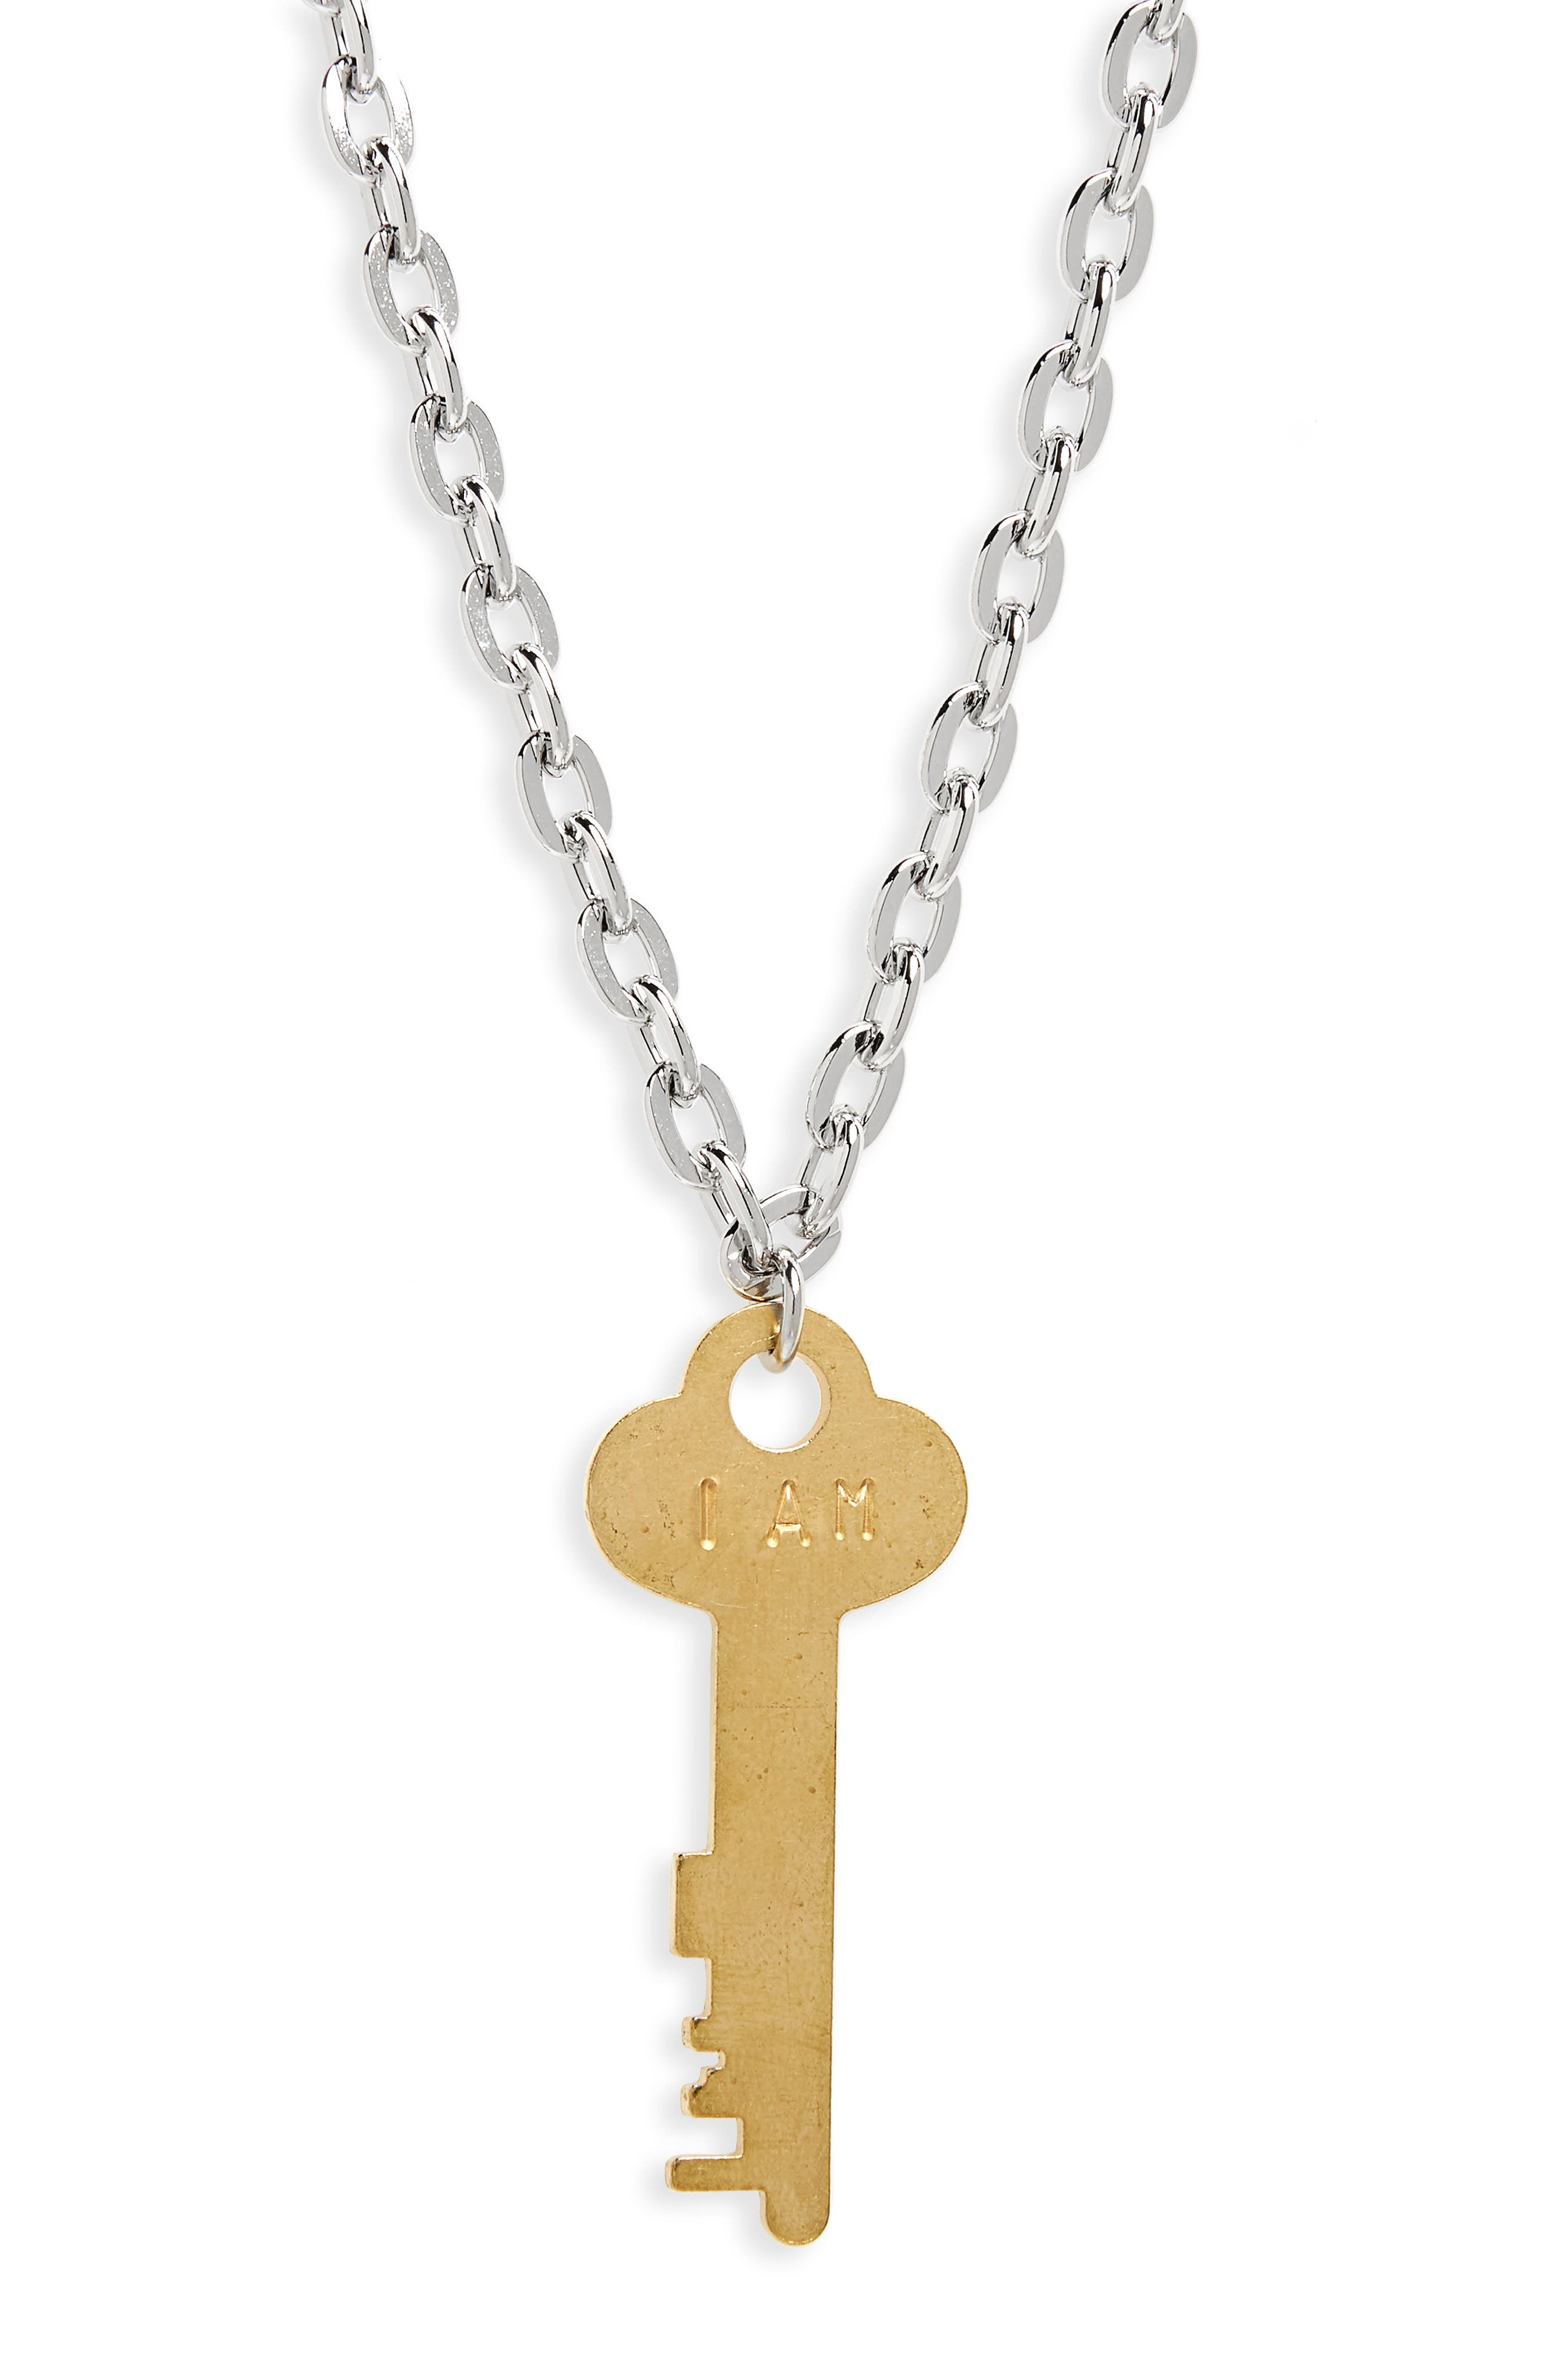 I Am Strong Key Charm Necklace,                             Alternate thumbnail 2, color,                             043